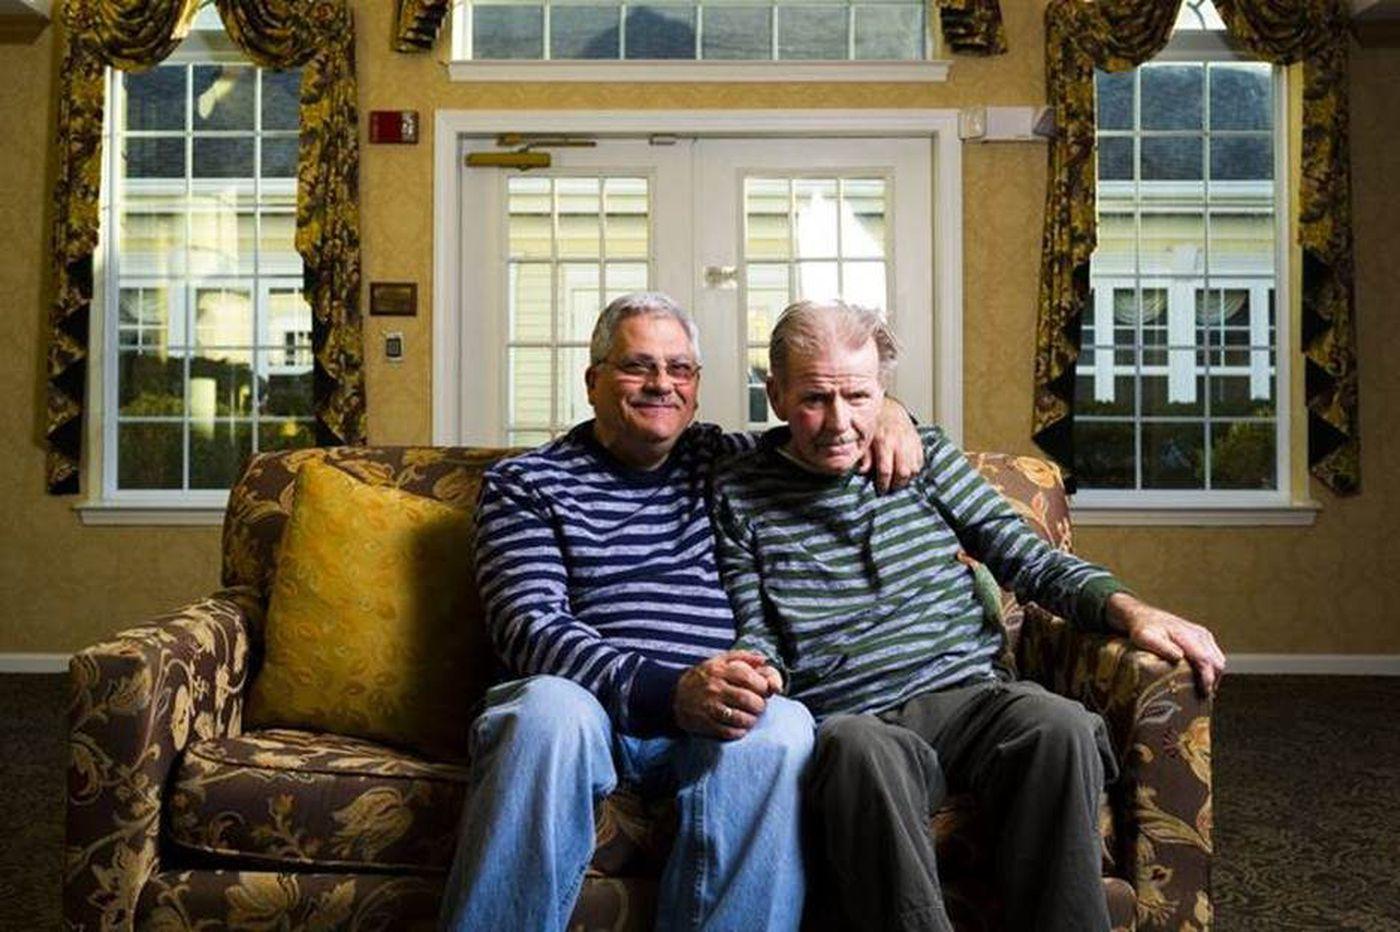 5 questions with a caregiver: 'There is life after Alzheimer's'